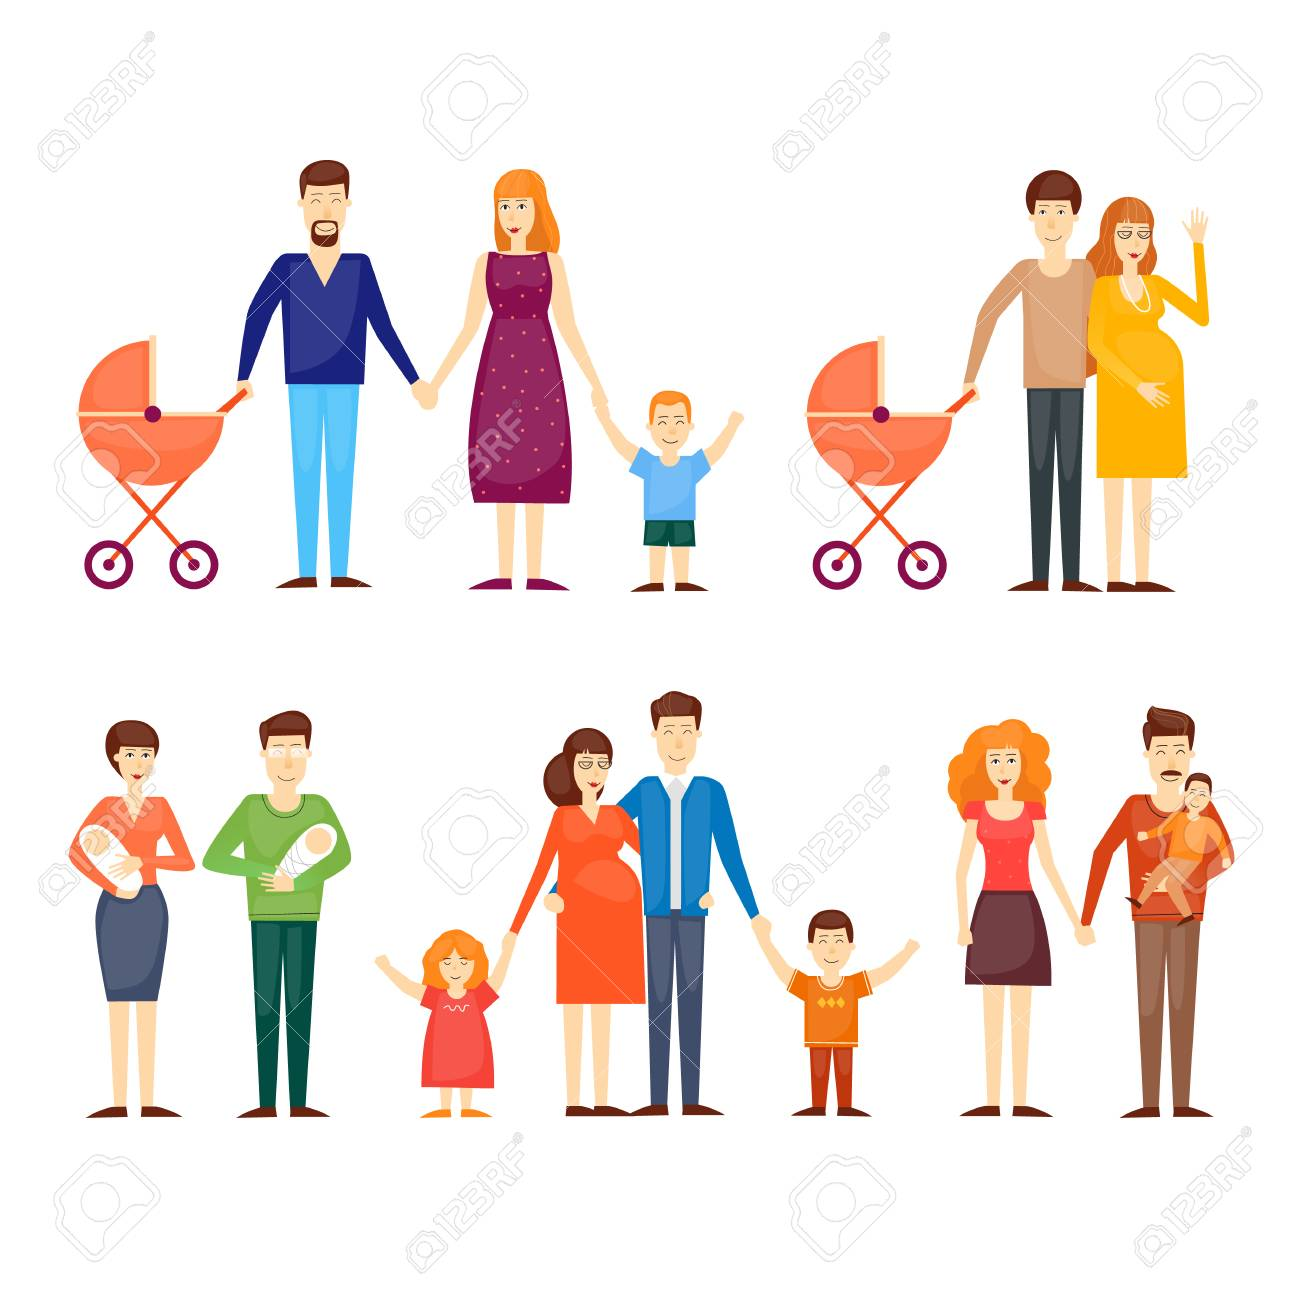 Parents With Kids Cartoon Family On An Isolated Background 1300x1300